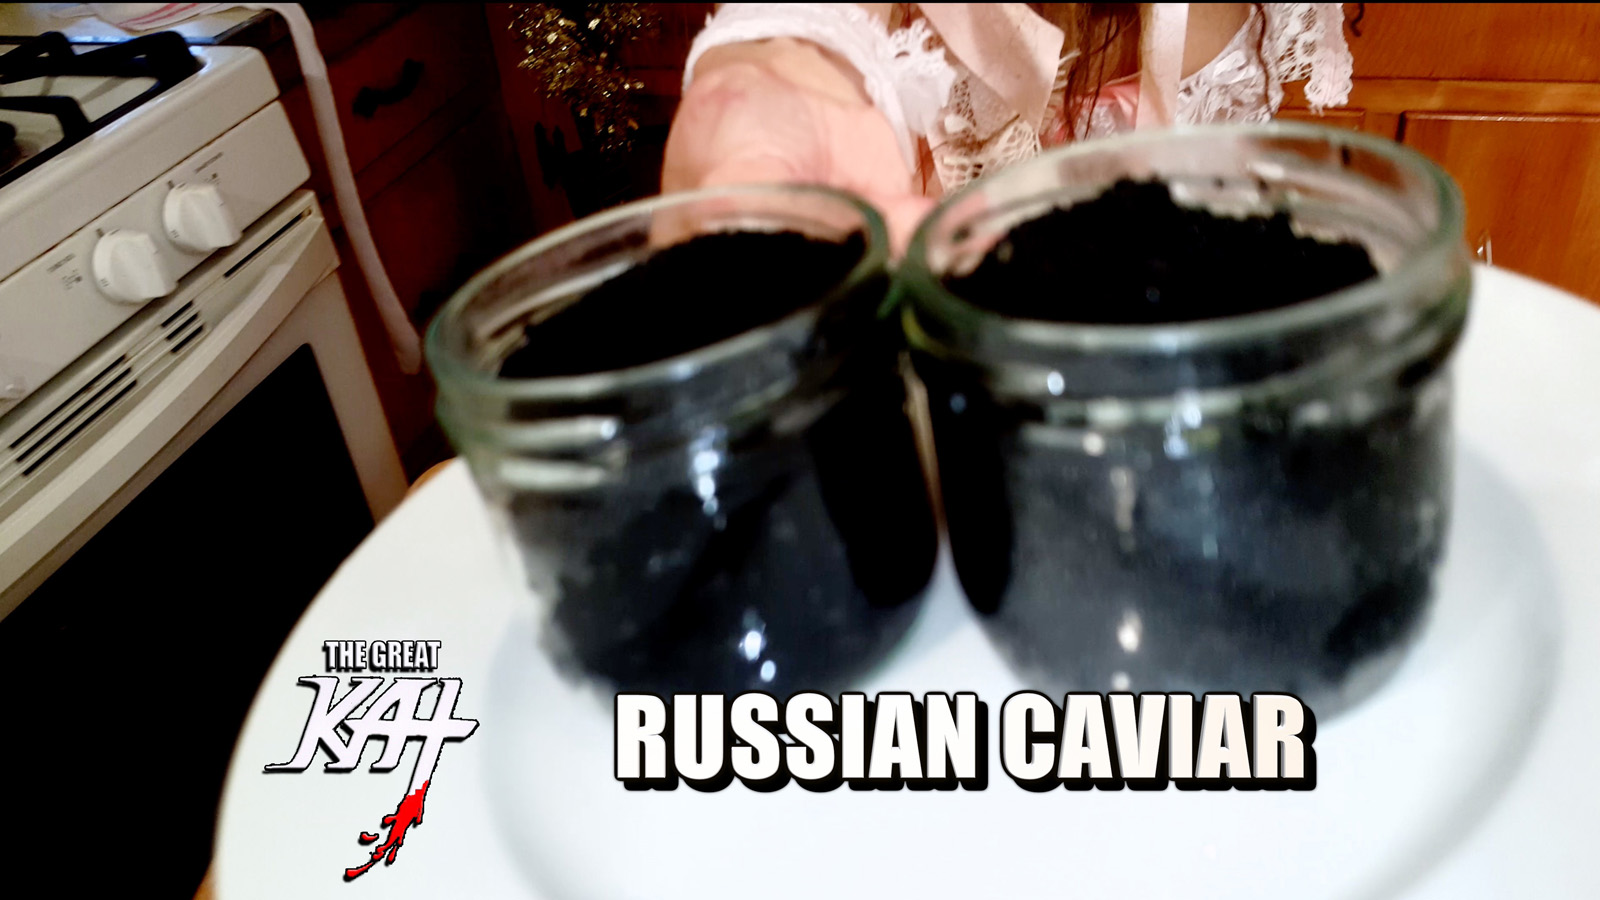 """RUSSIAN CAVIAR! From """"CHEF GREAT KAT COOKS RUSSIAN CAVIAR AND BLINI WITH RIMSKY-KORSAKOV"""" VIDEO!!"""